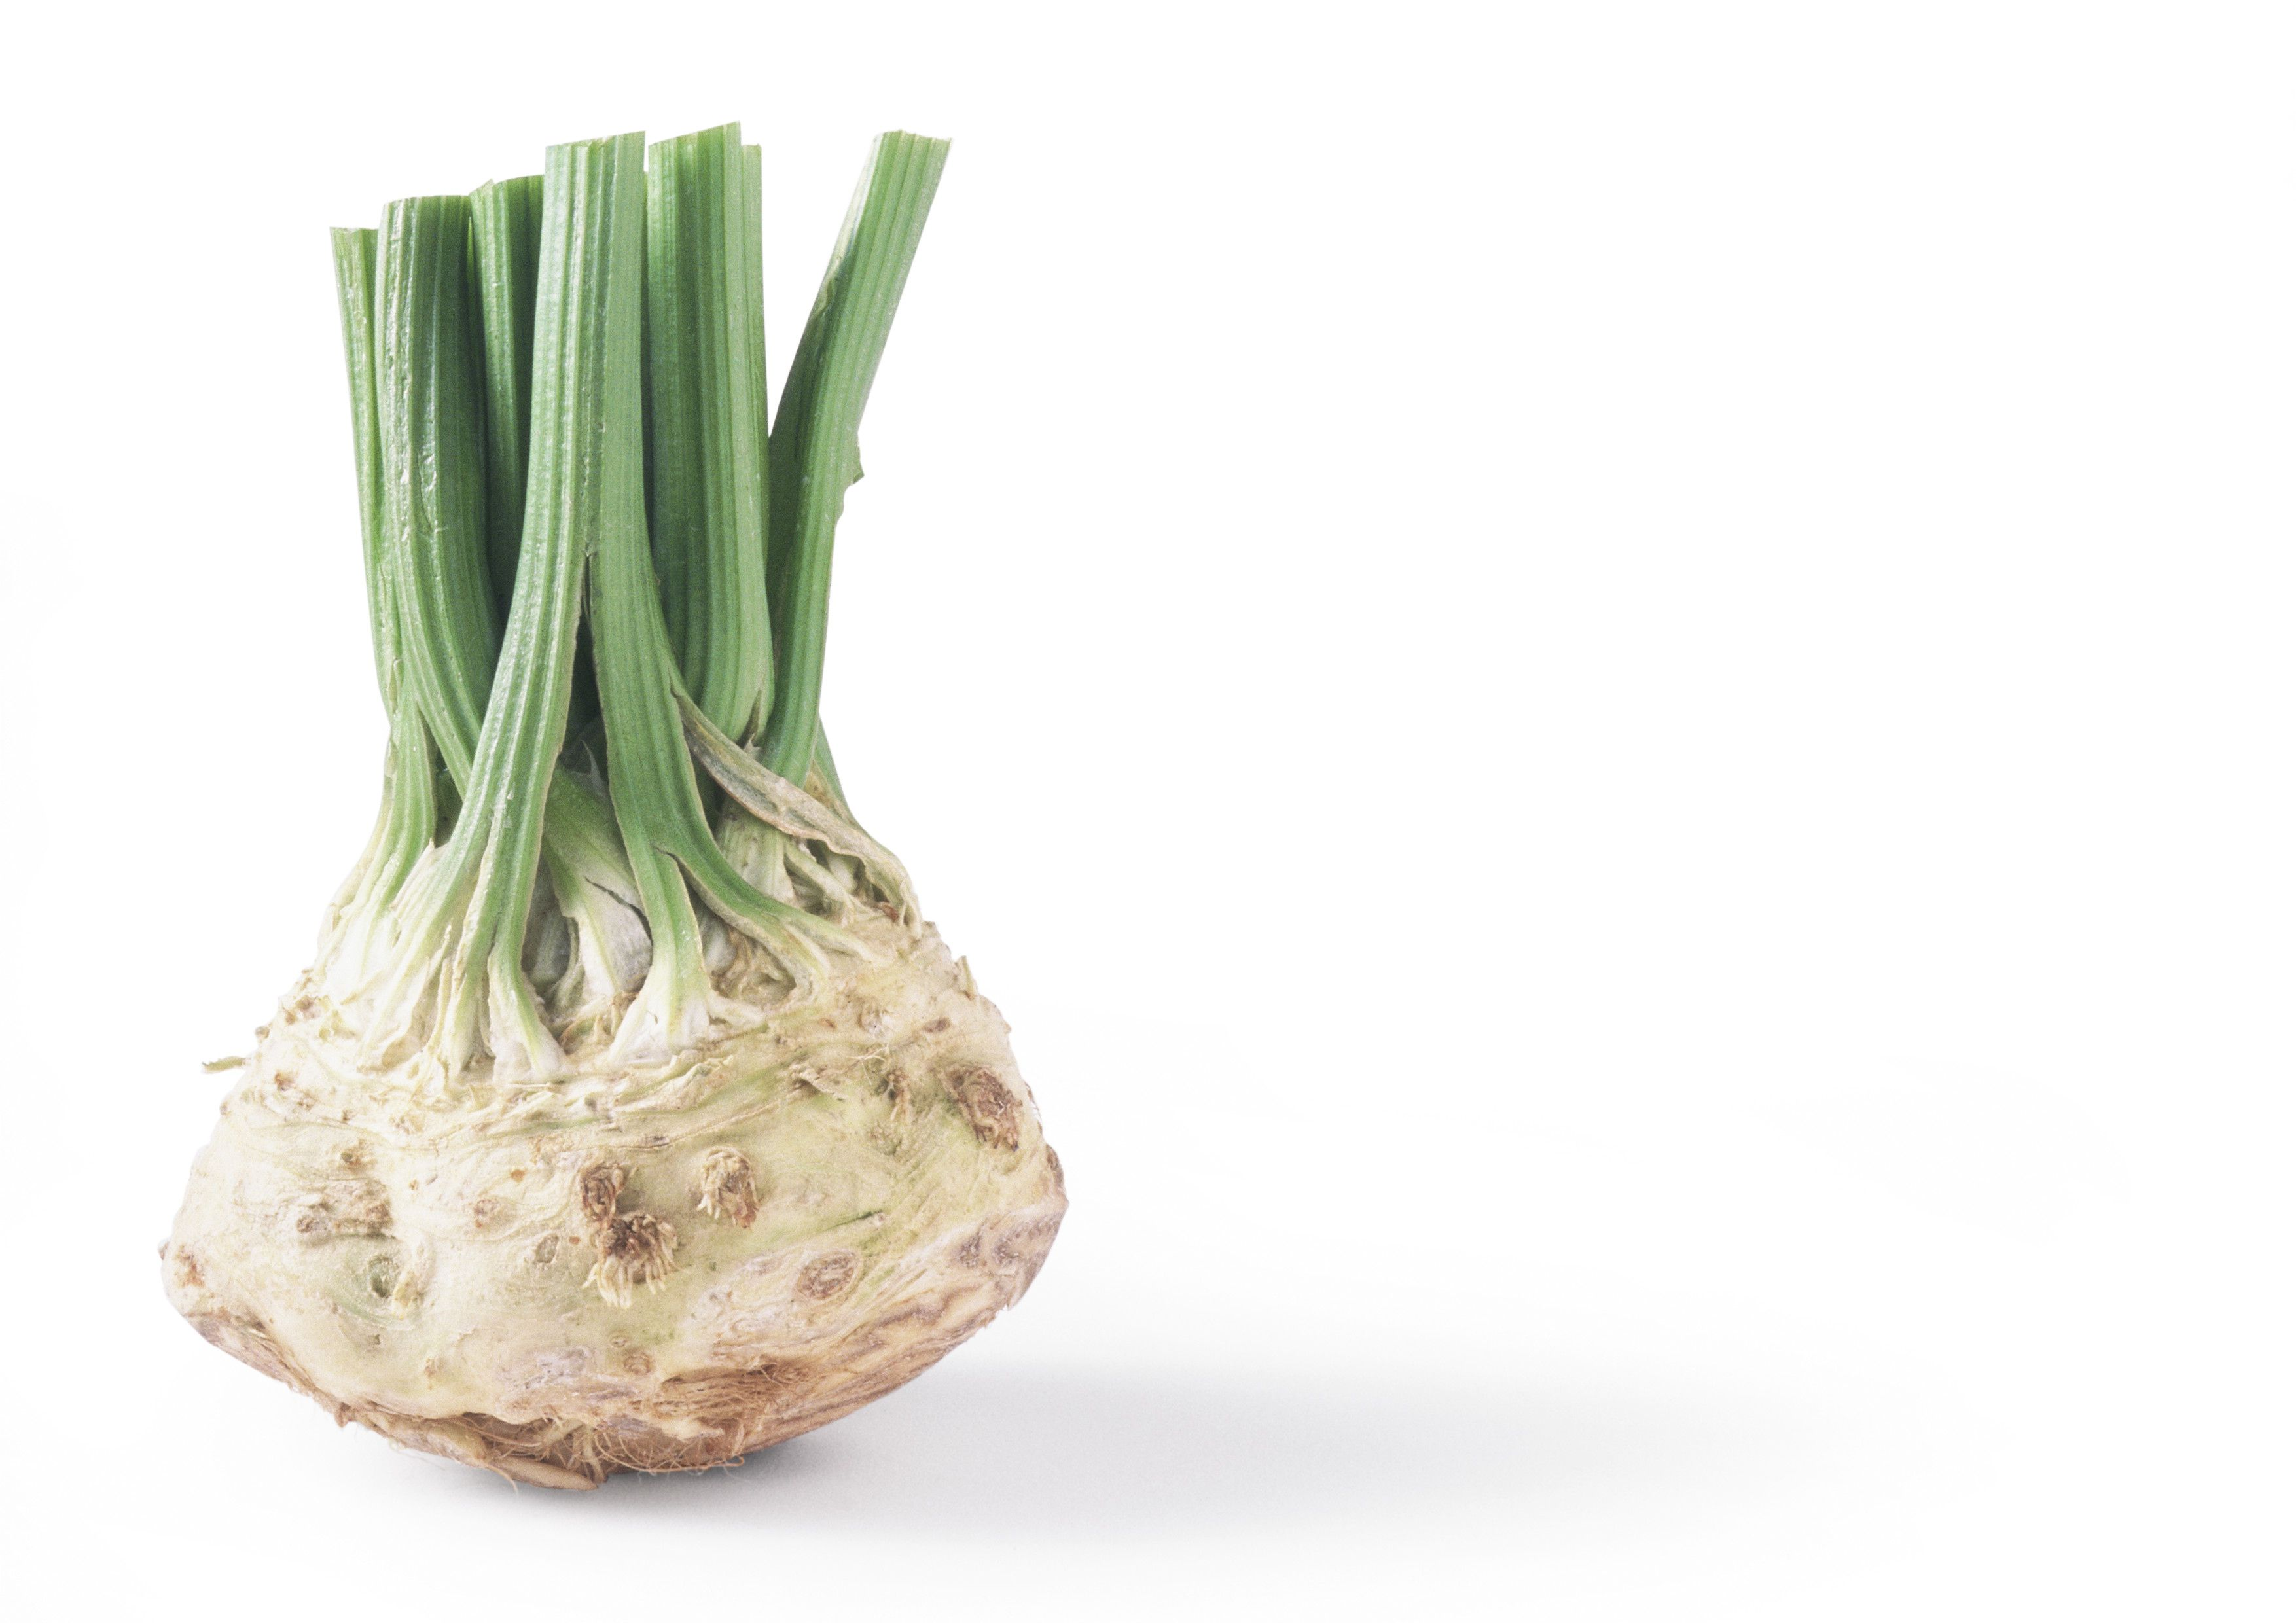 How To Make Celeriac Chips At Home